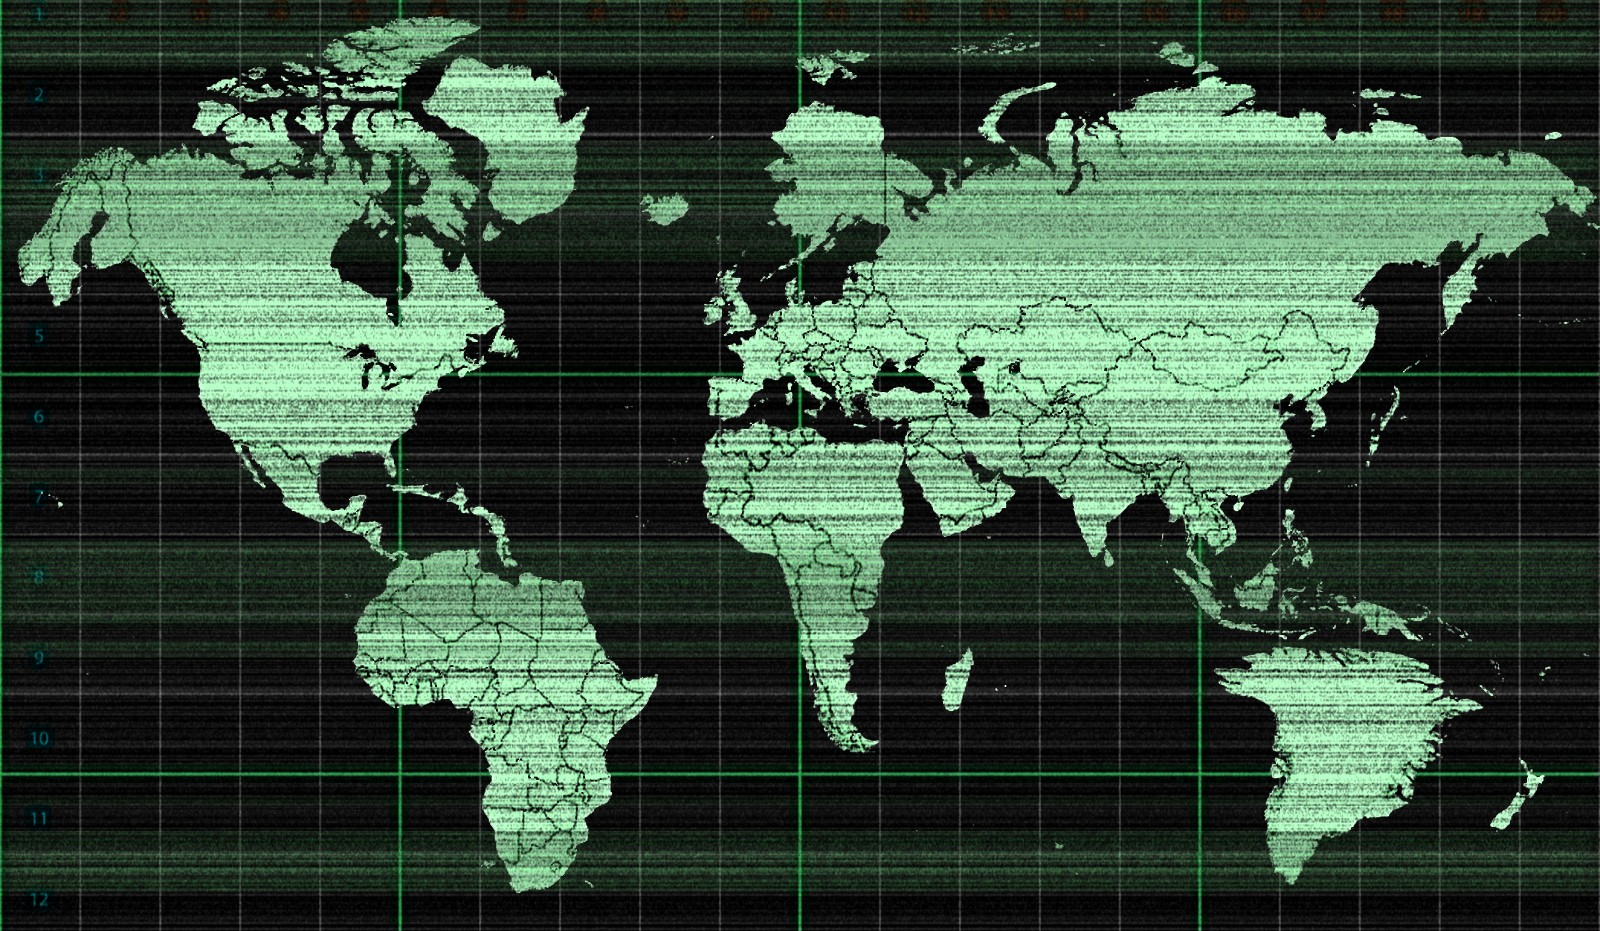 World map wallpaper 1600x931 196238 wallpaperup gumiabroncs Image collections